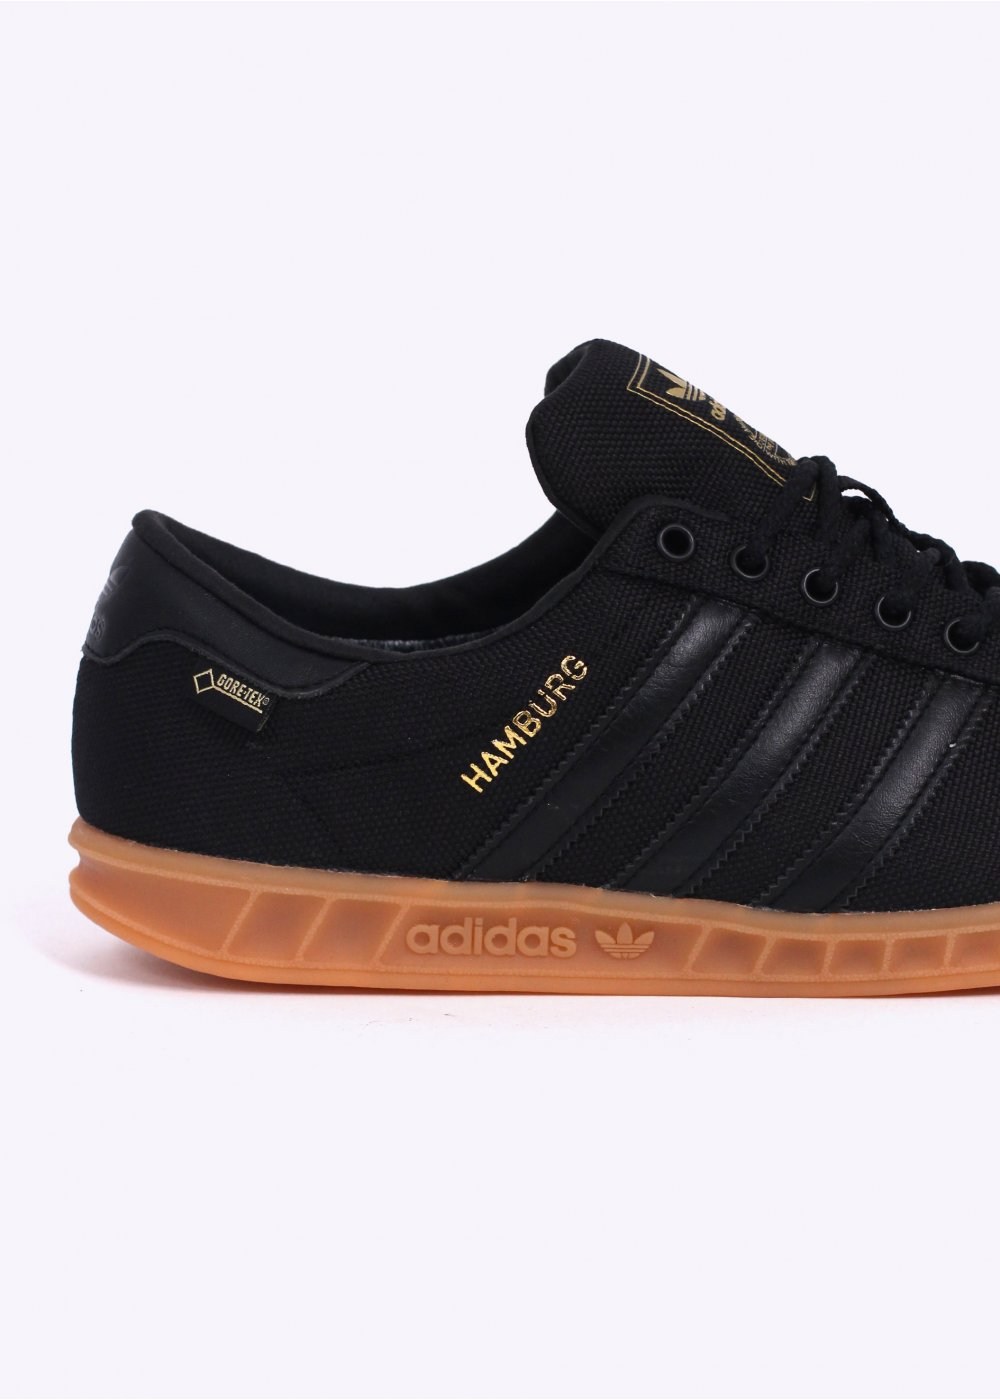 new products f2b35 31a1c adidas hamburg gum